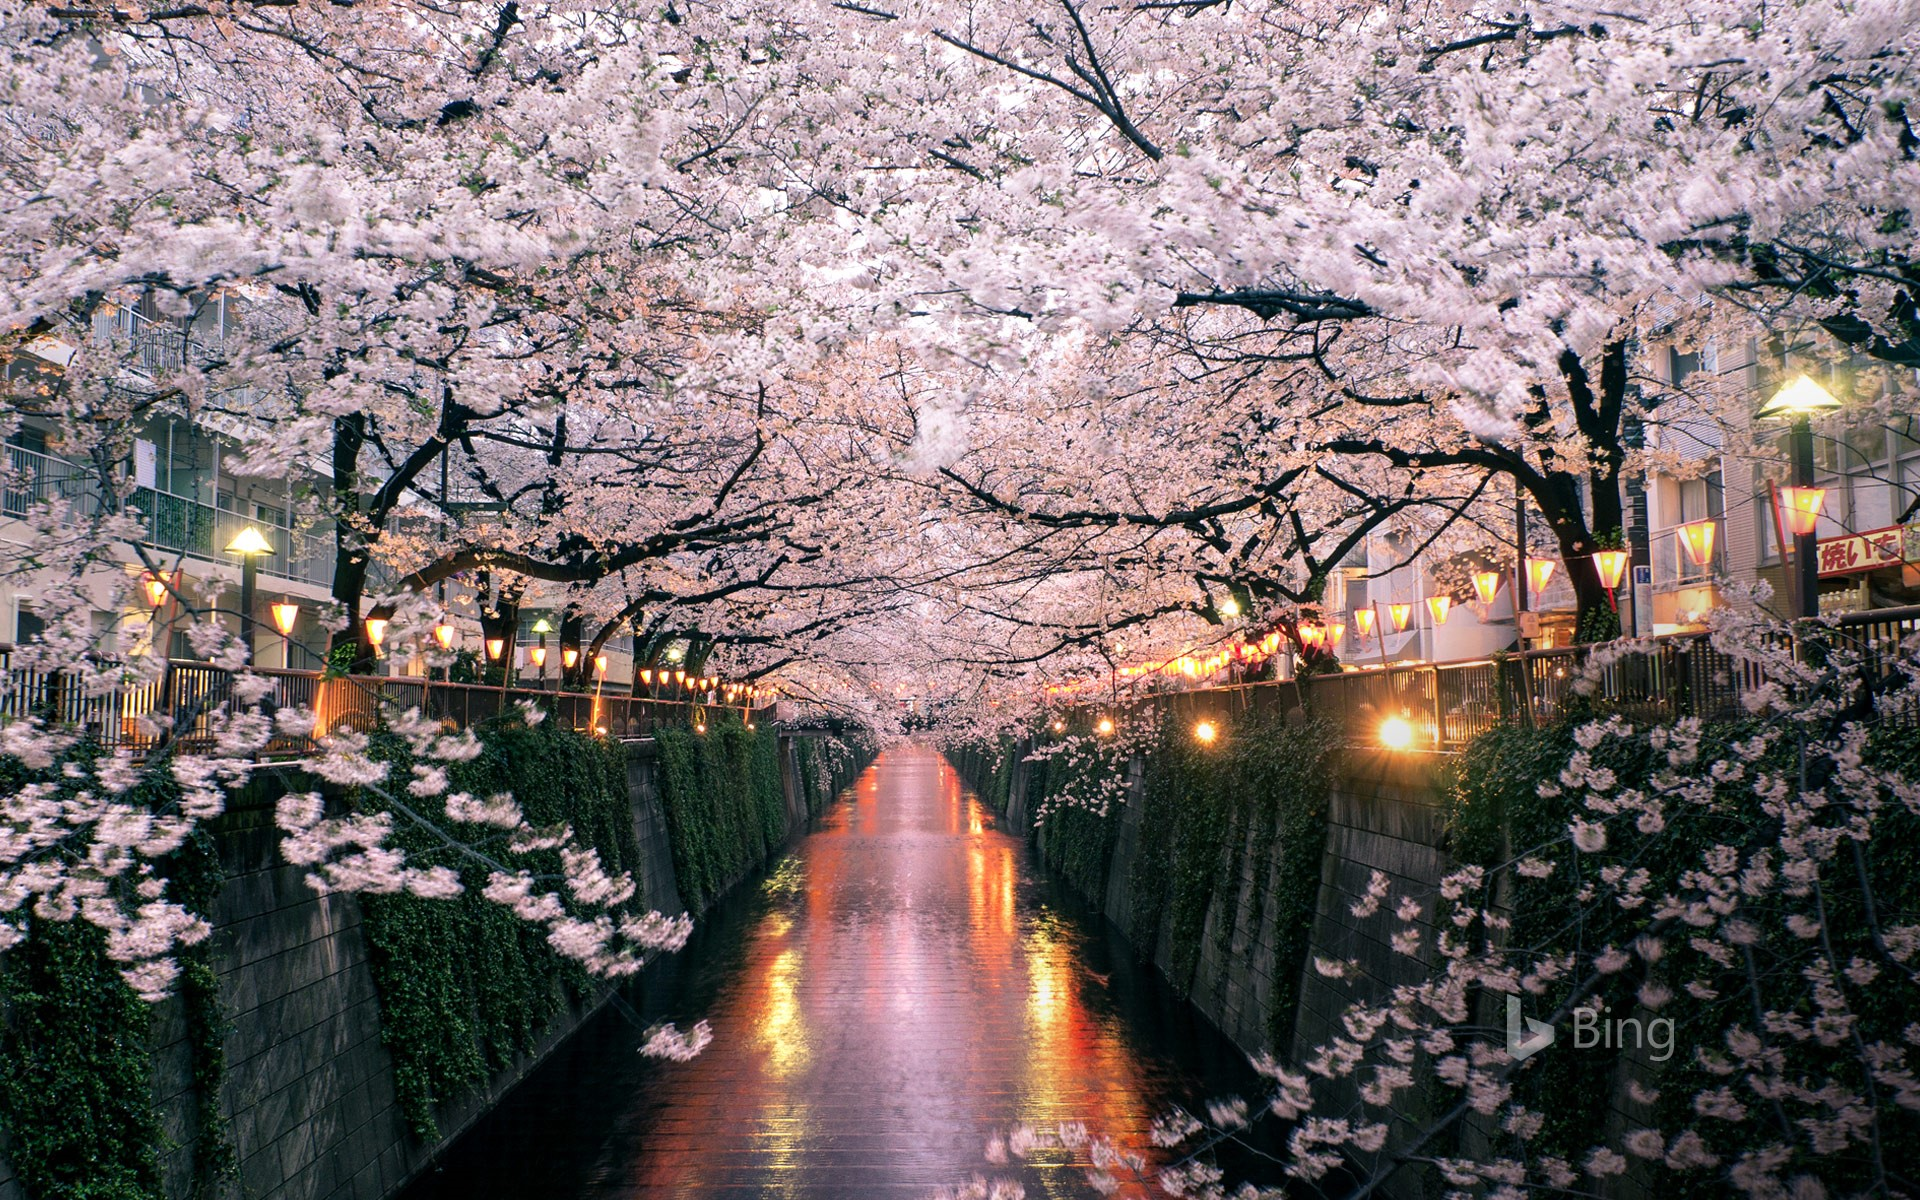 Cherry blossoms over the Meguro River, Tokyo, Japan (© taketan/Getty Images)